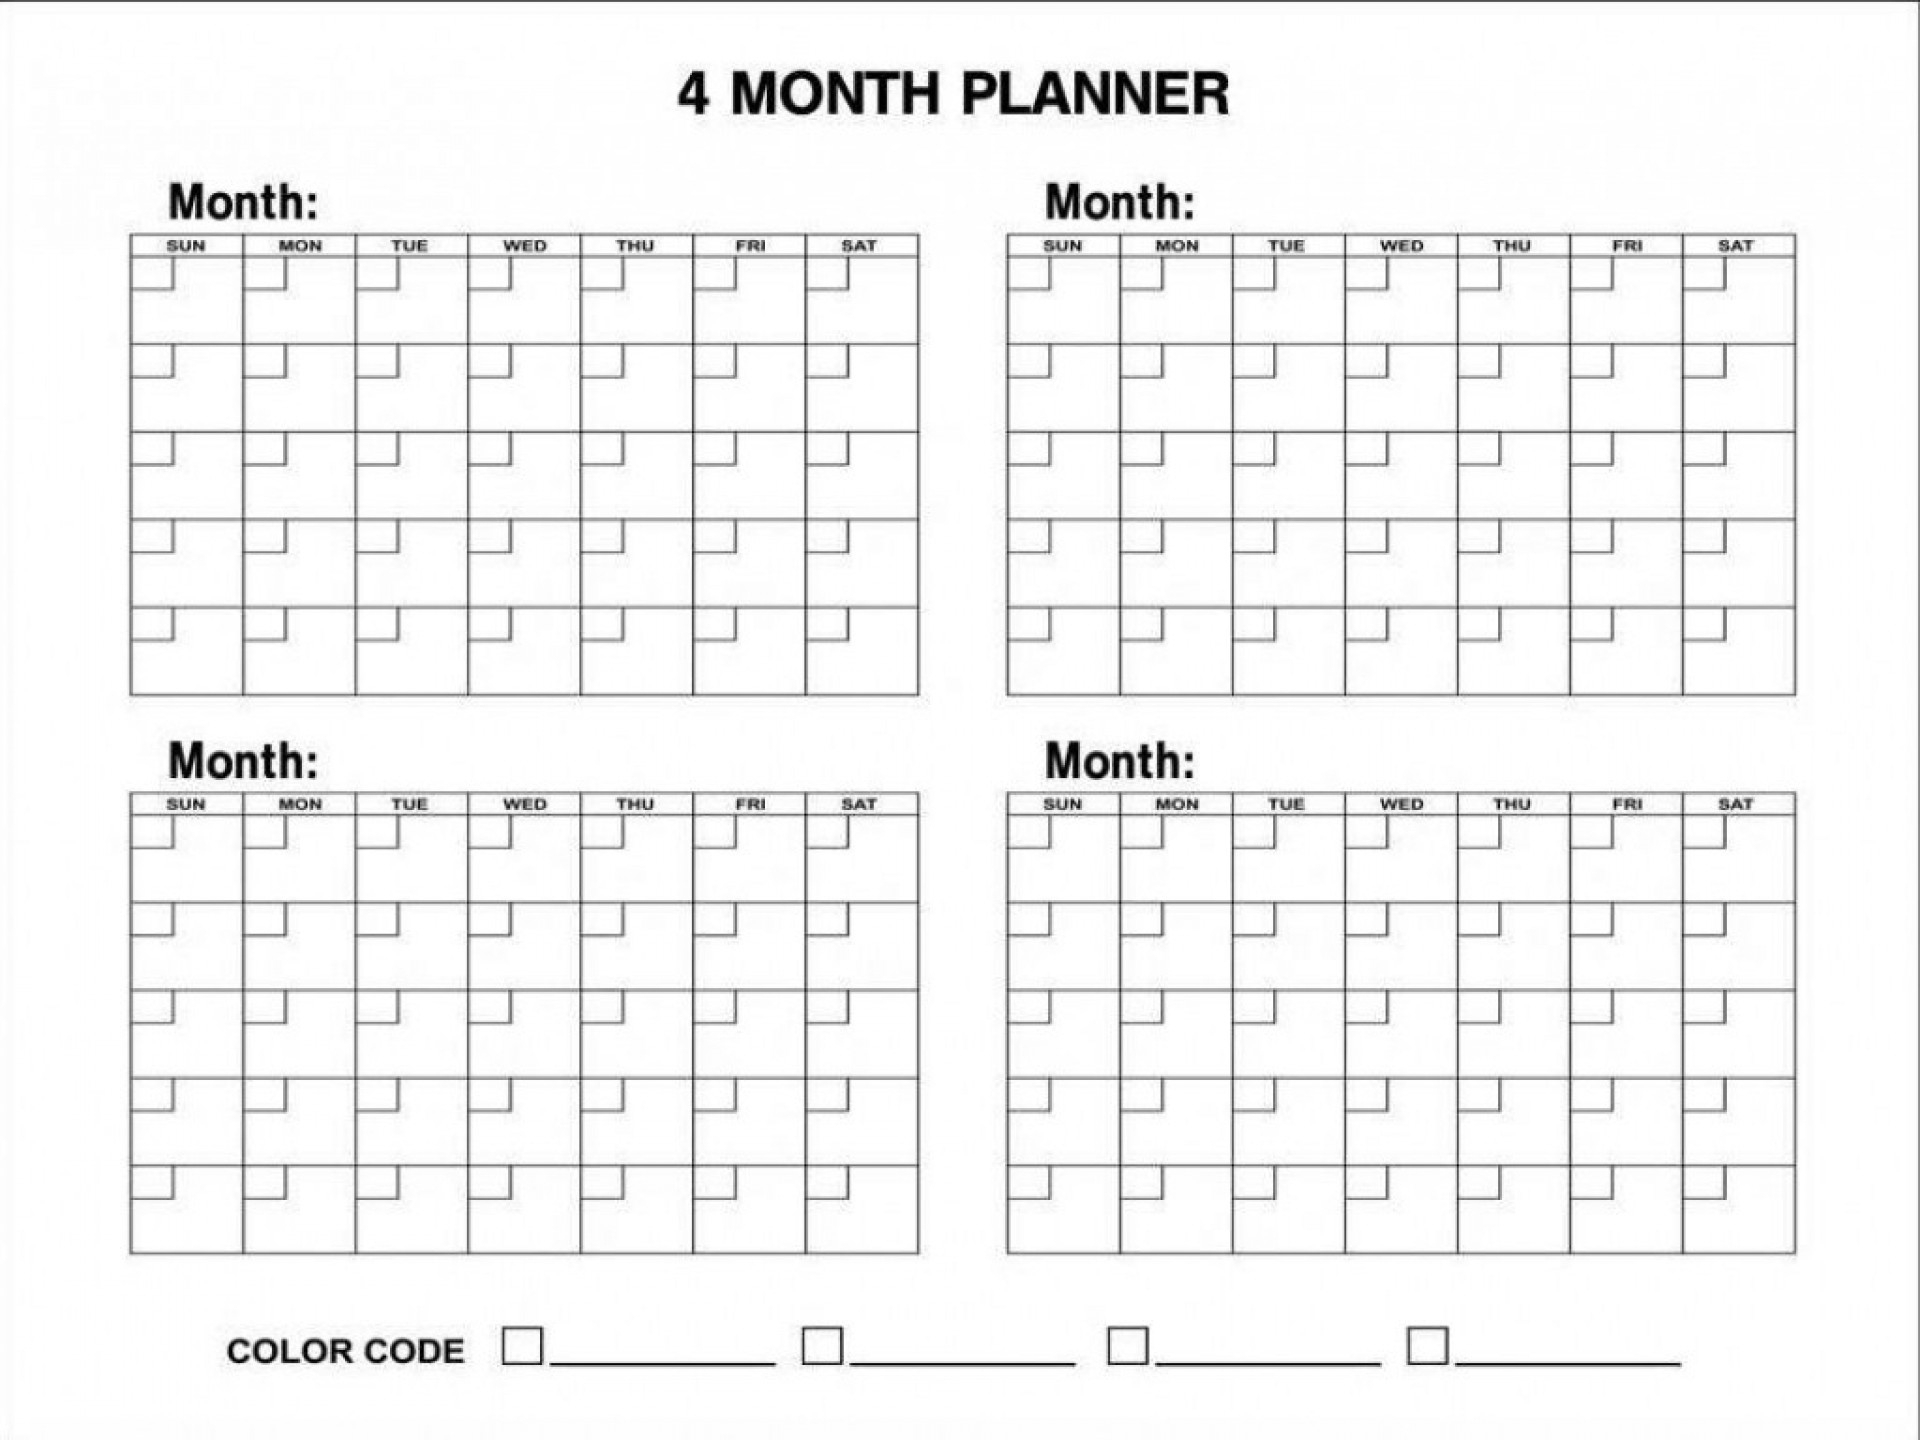 6 Month Planning Calendar Template • Printable Blank